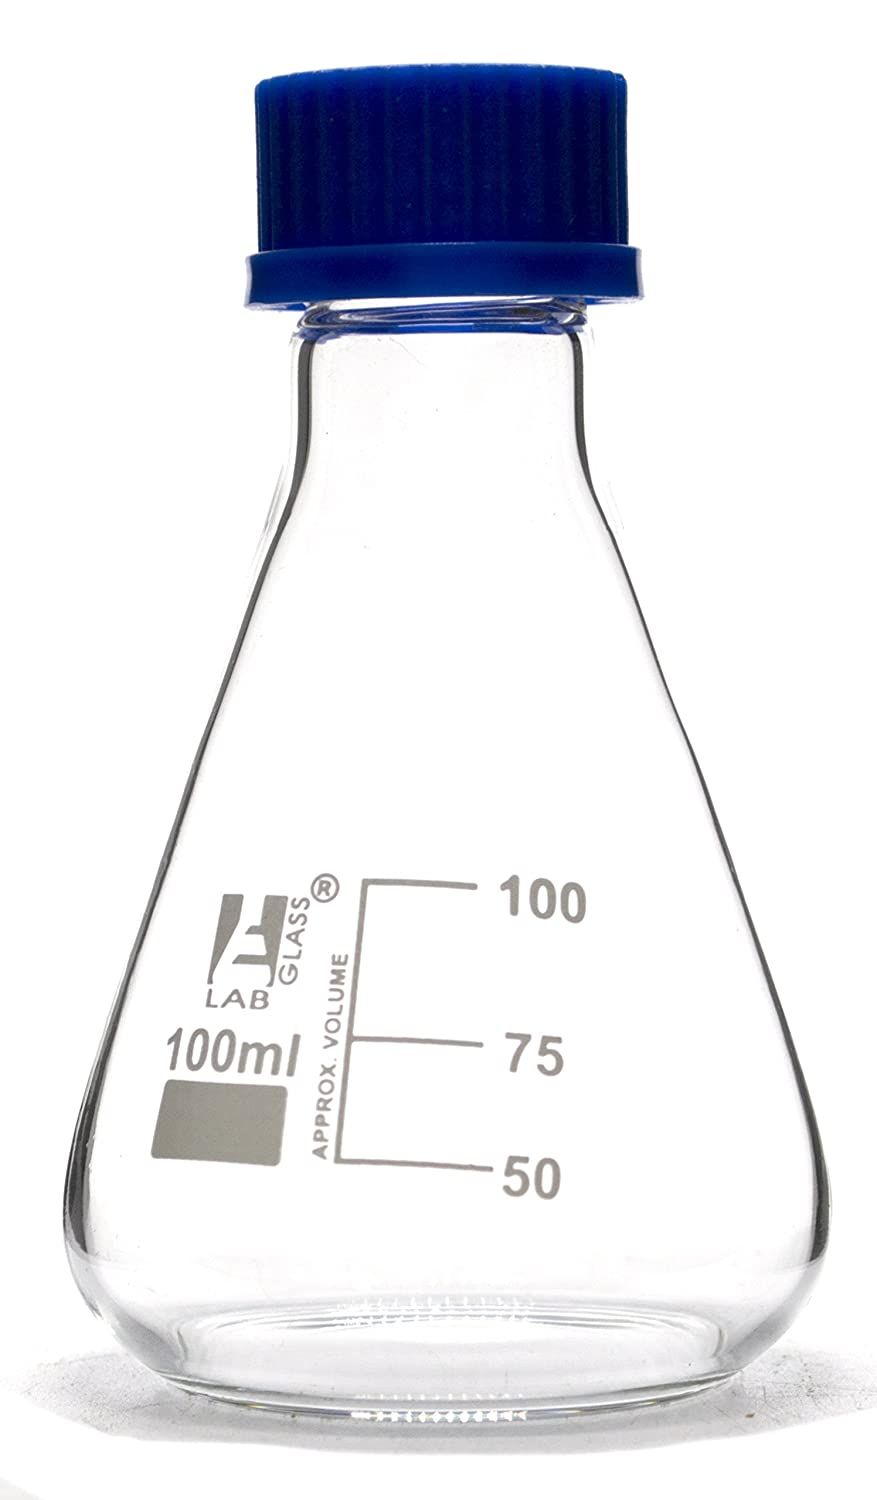 Erlenmeyer Flask 100ml It is very popular - Borosilicate PTFE with Glass Screw C Max 66% OFF